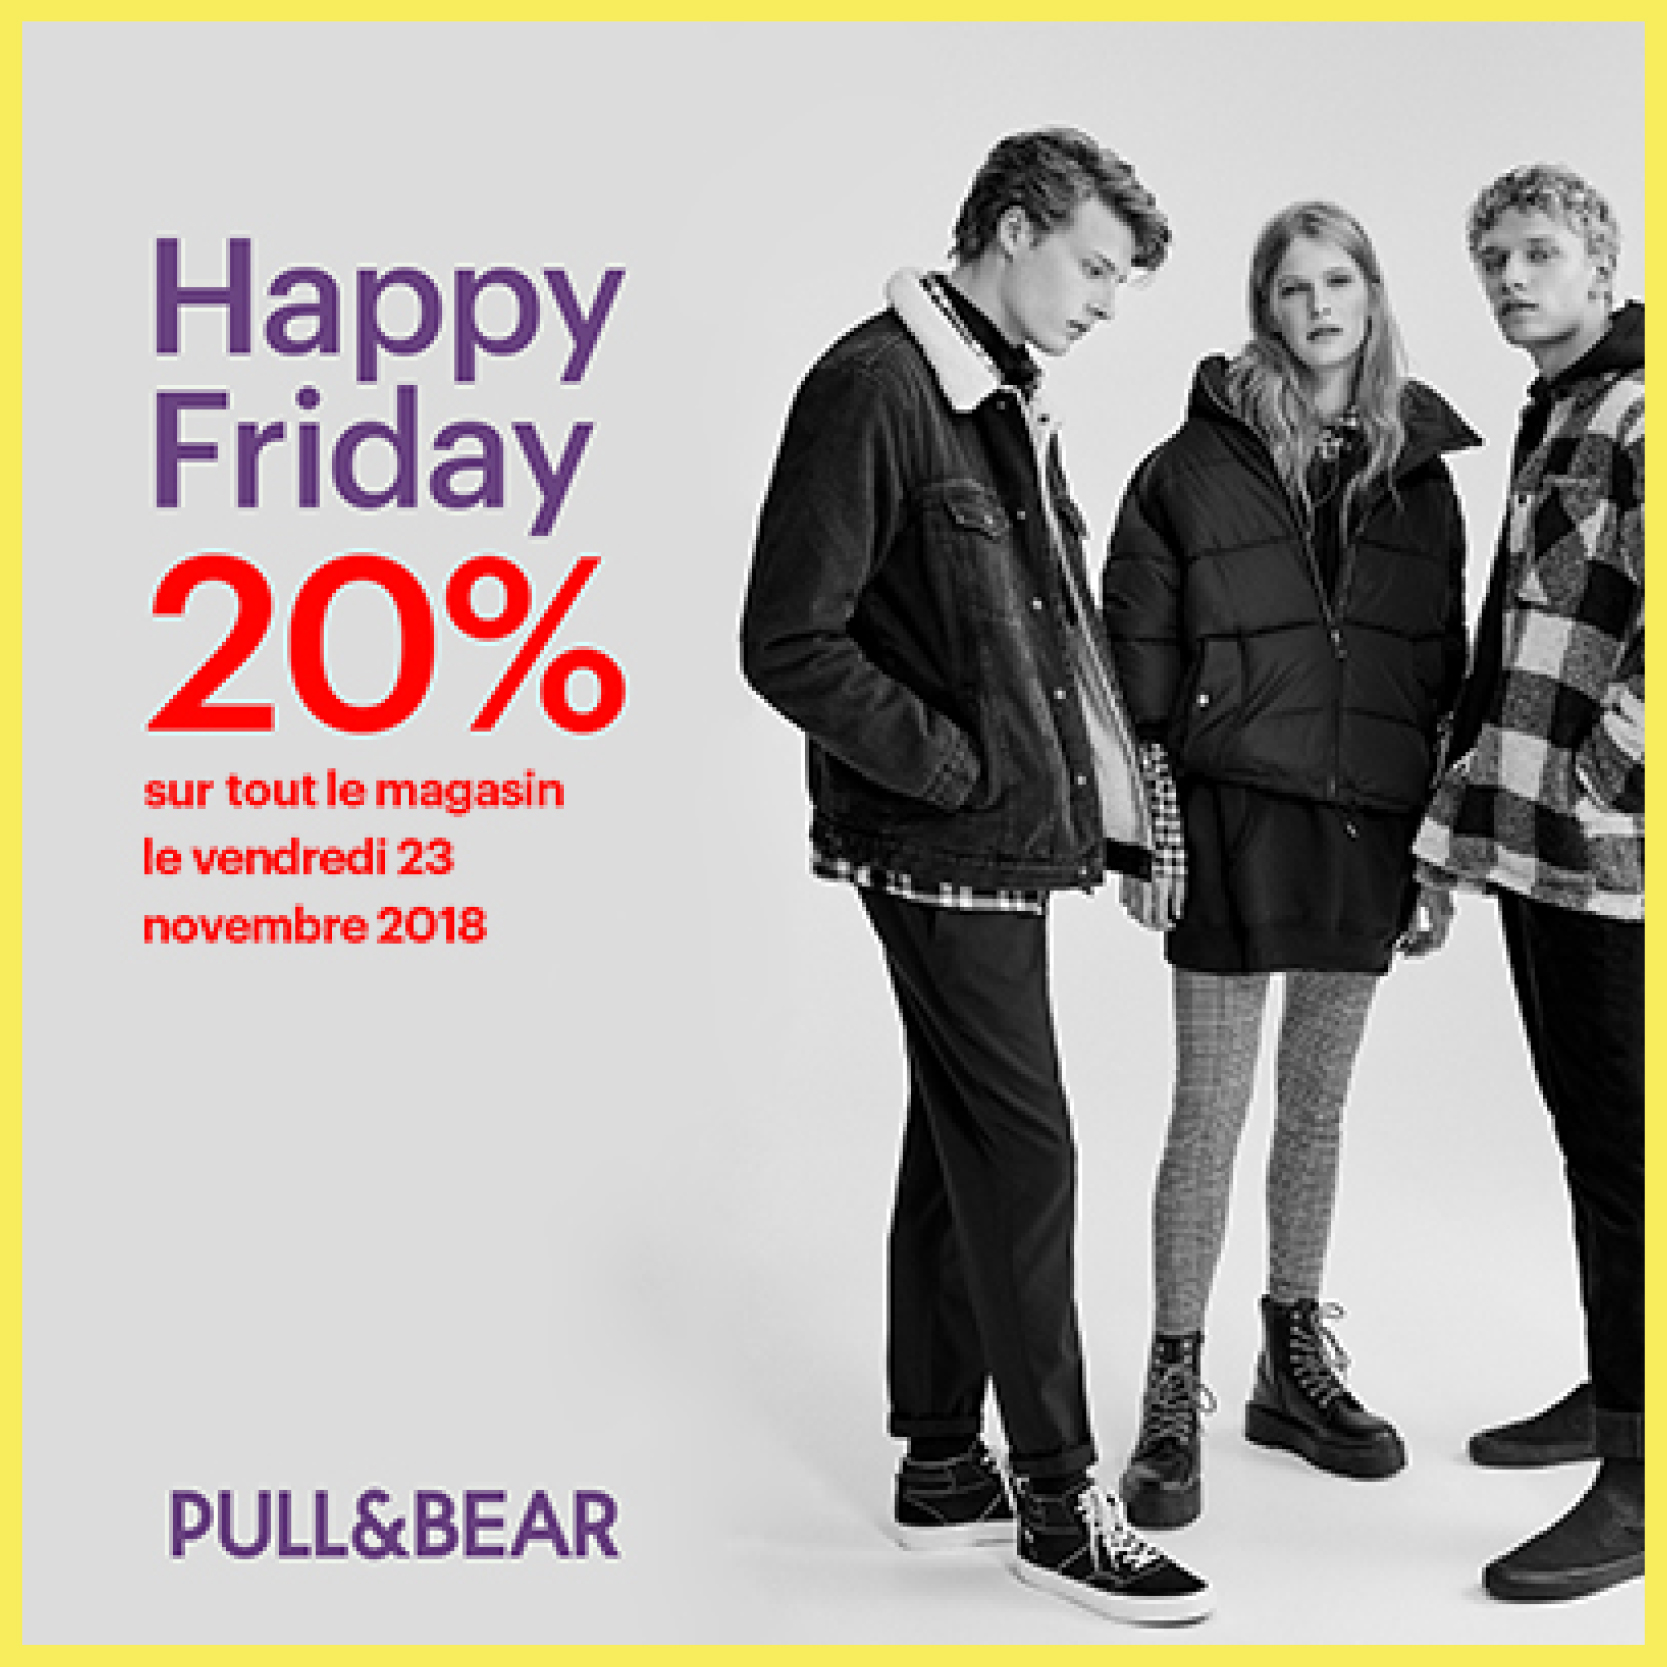 PULL & BEAR CÉLÈBRE LE HAPPY FRIDAY